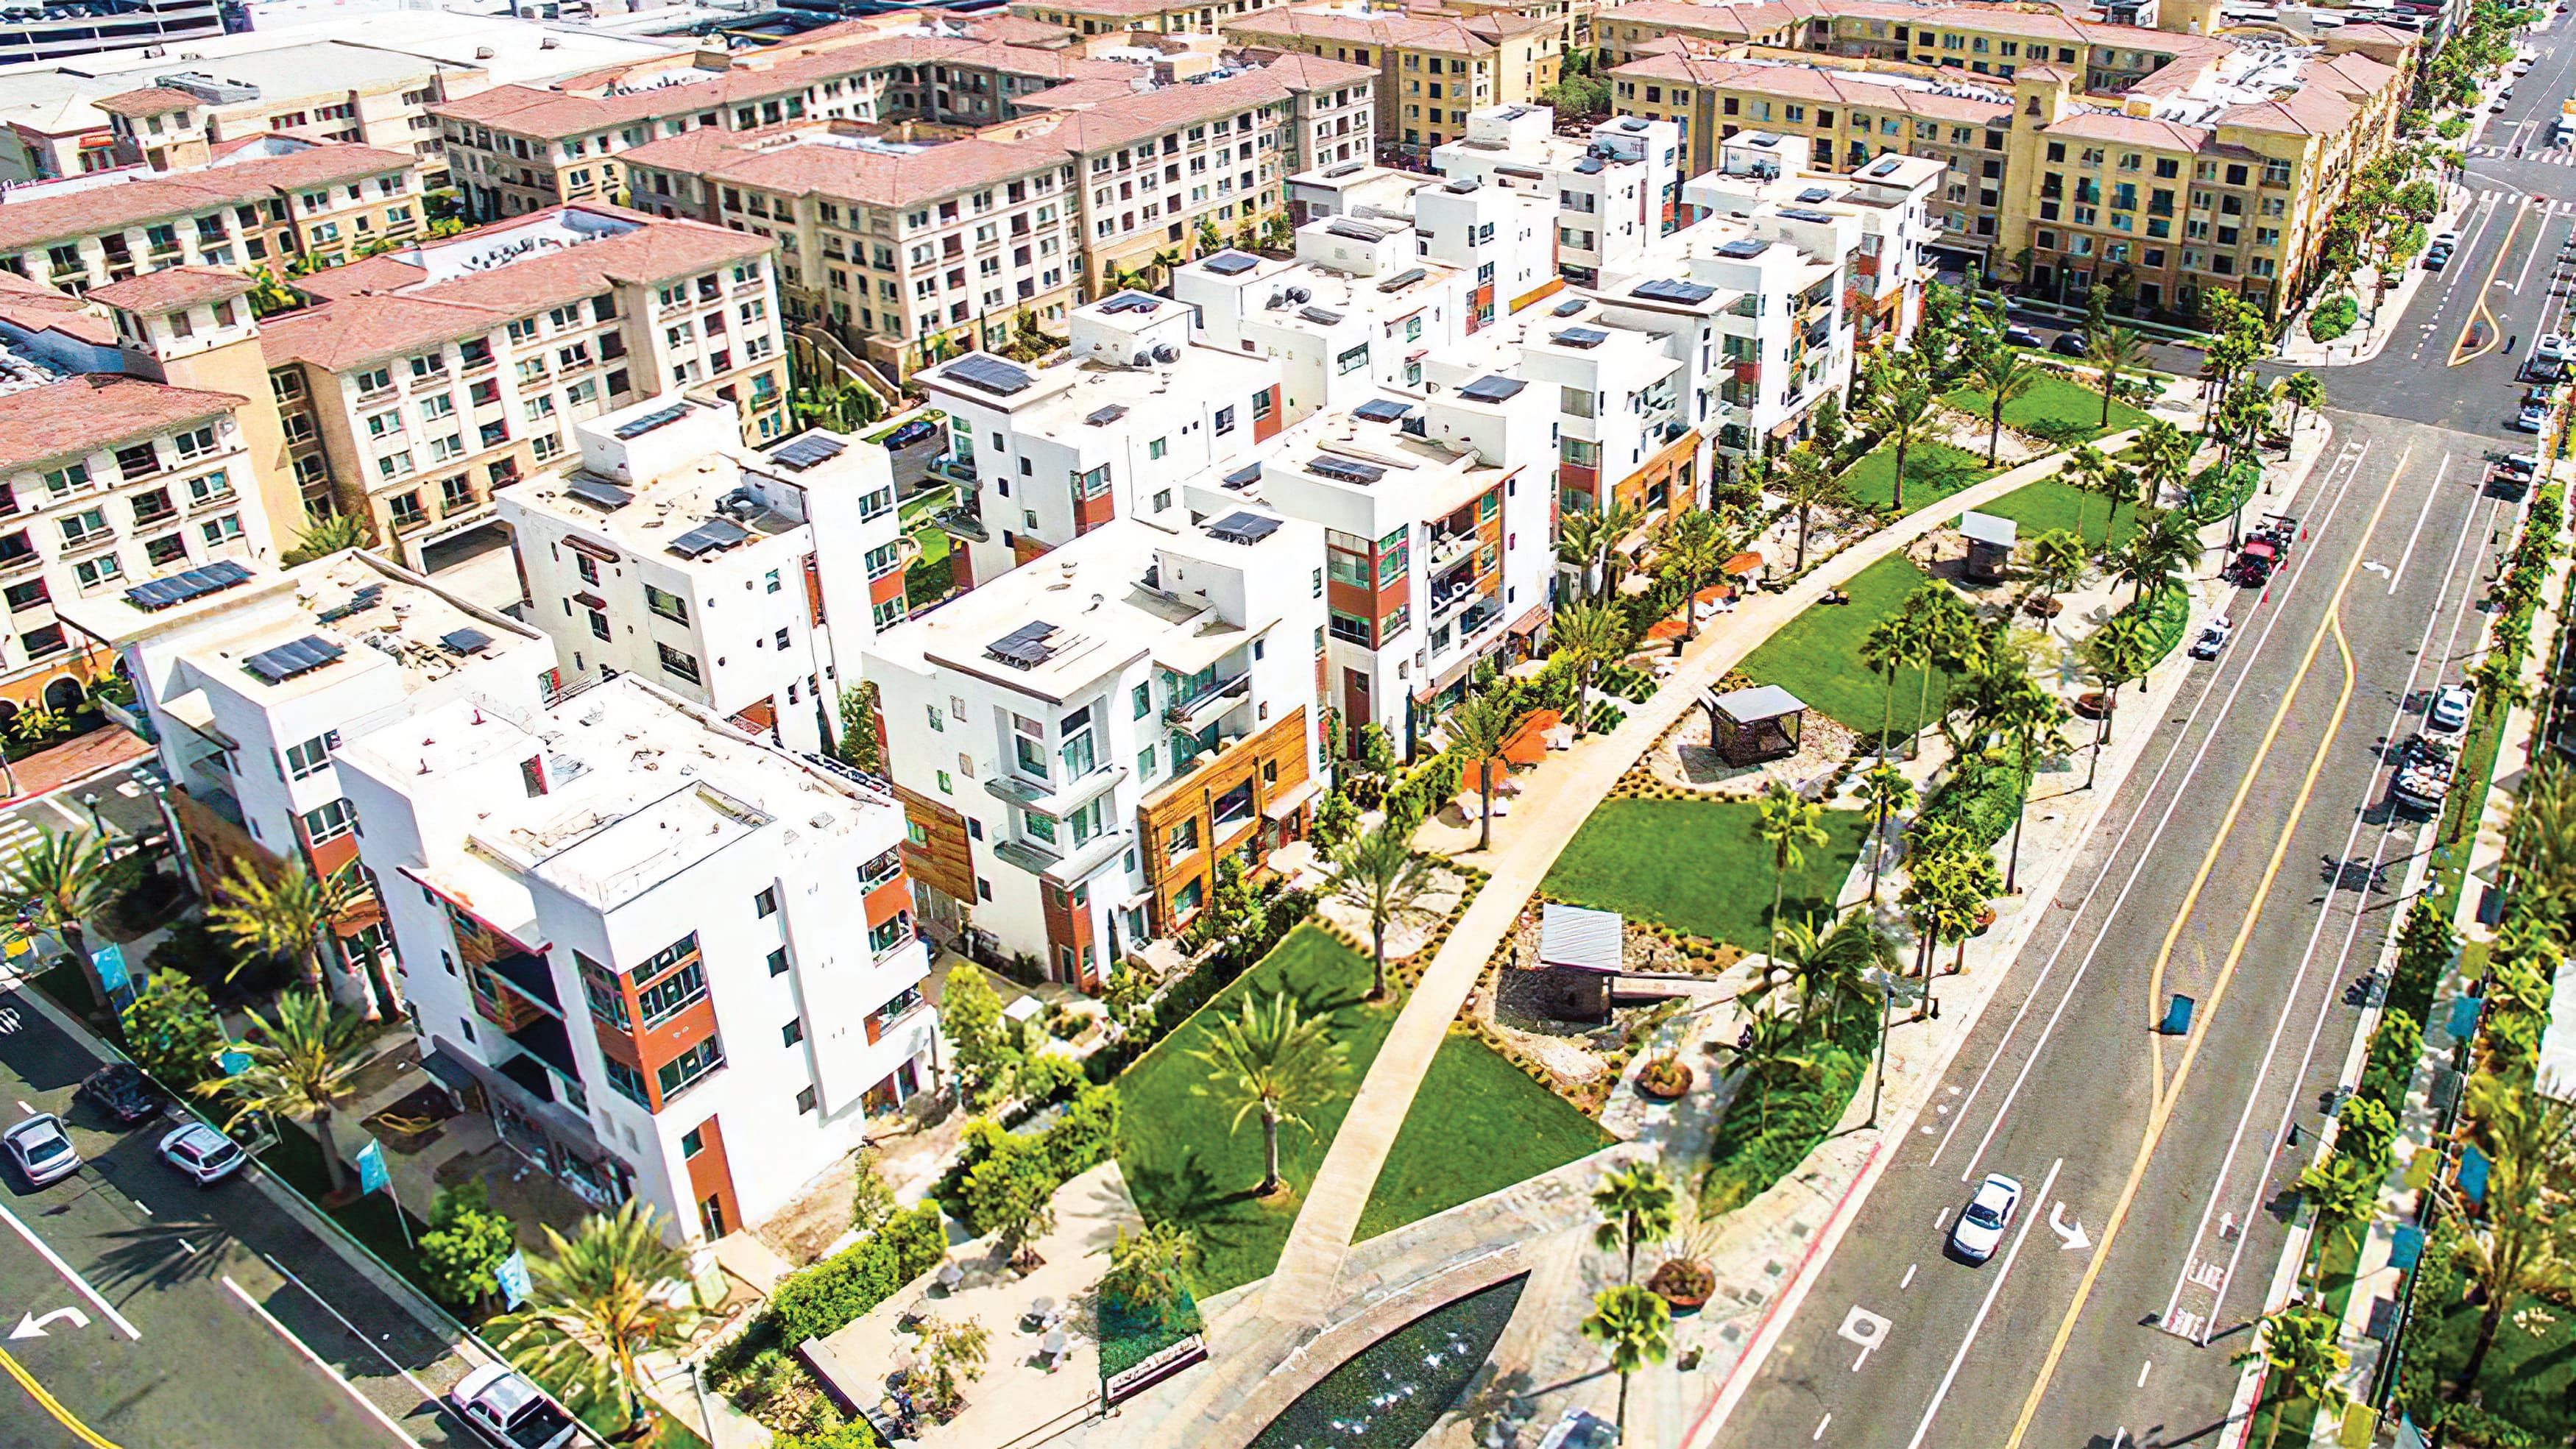 Architectural aerial render of multi-family housing units.